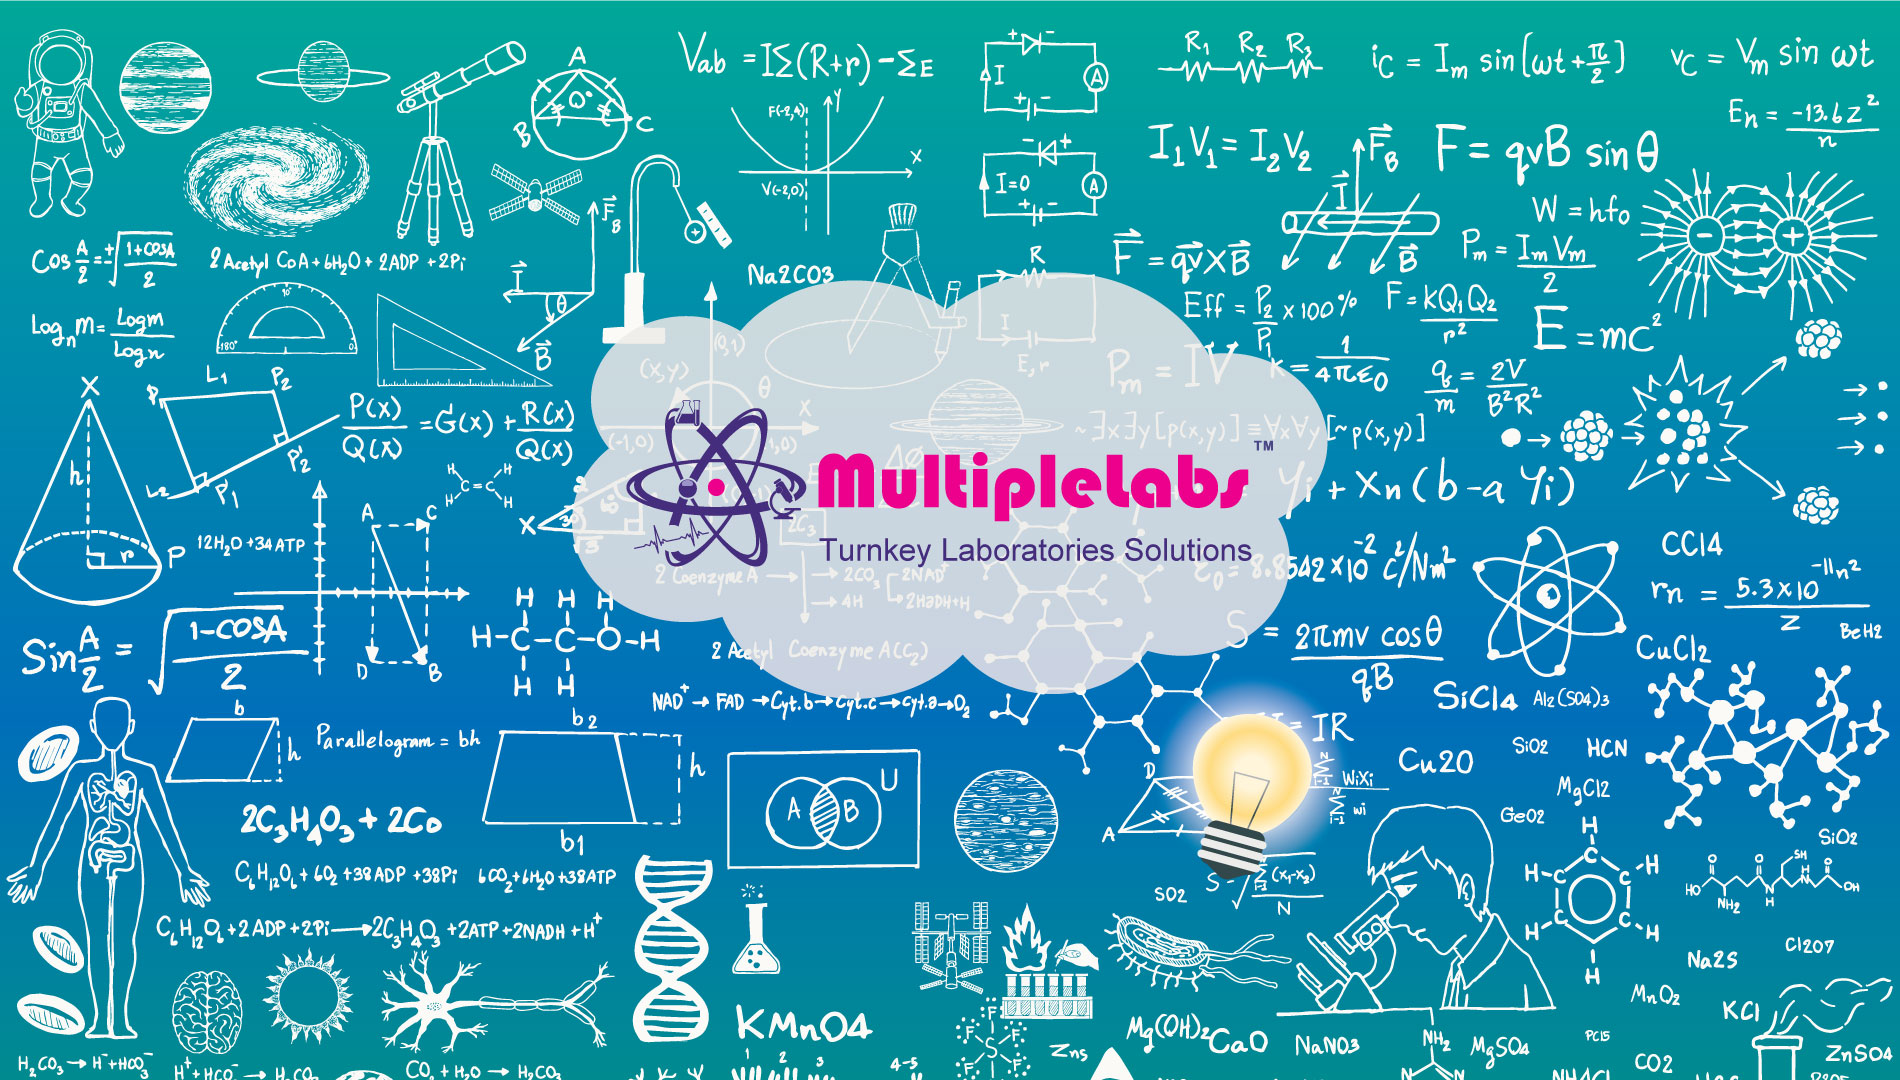 Multiplelabs | Turnkey labs